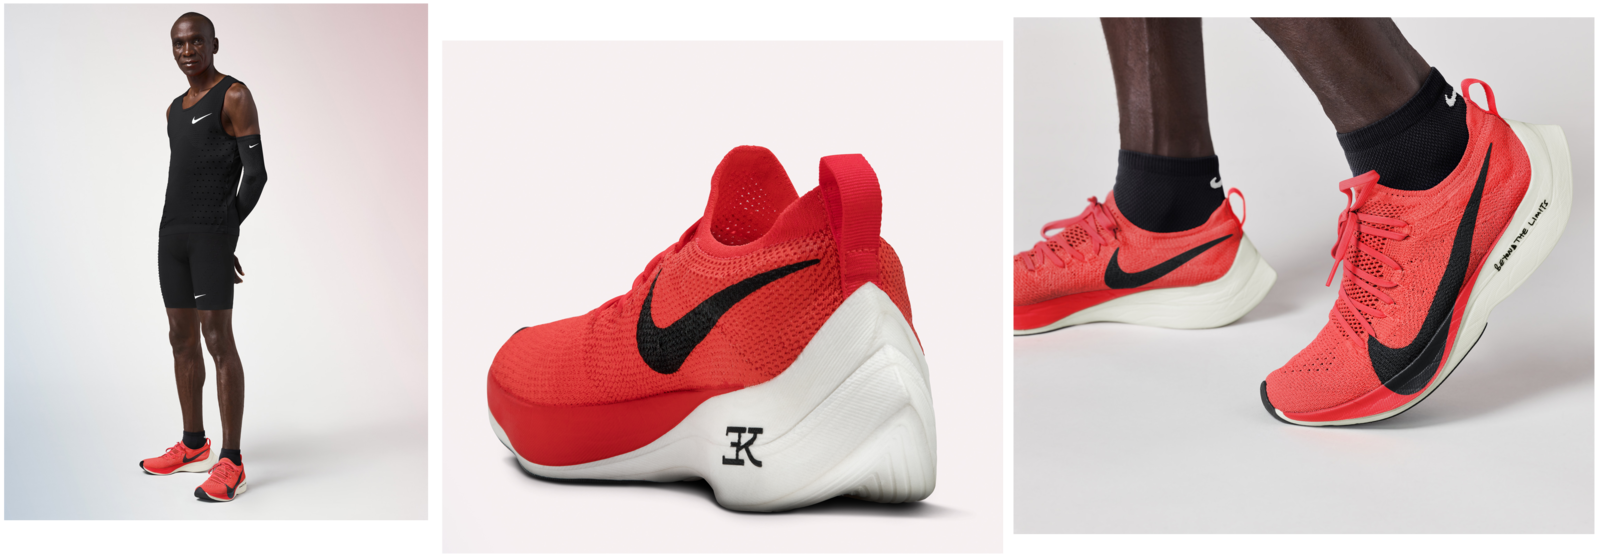 online retailer a4631 608b4 Eliud Kipchoge Goes for a World Record in Berlin 2. Kipchoge s custom  version of the Nike Zoom Vaporfly Elite.